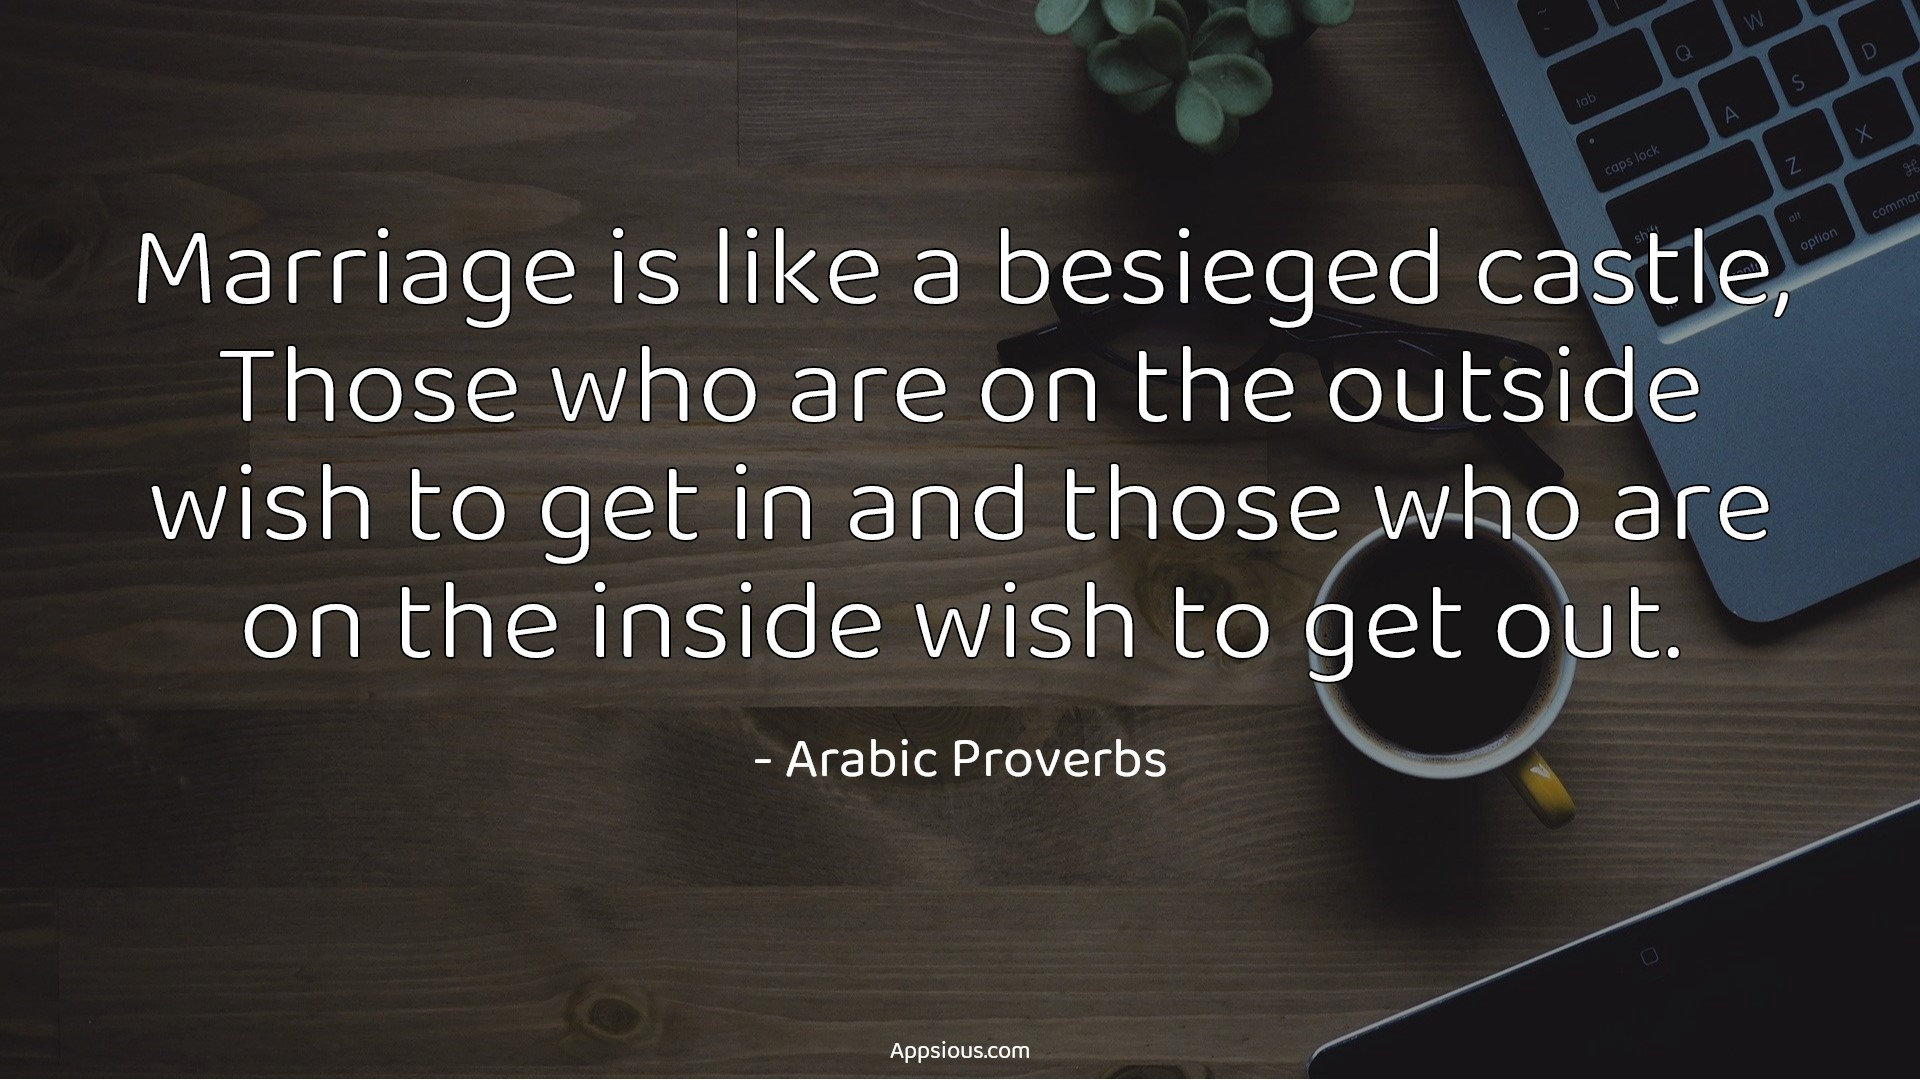 Marriage is like a besieged castle, Those who are on the outside wish to get in and those who are on the inside wish to get out.